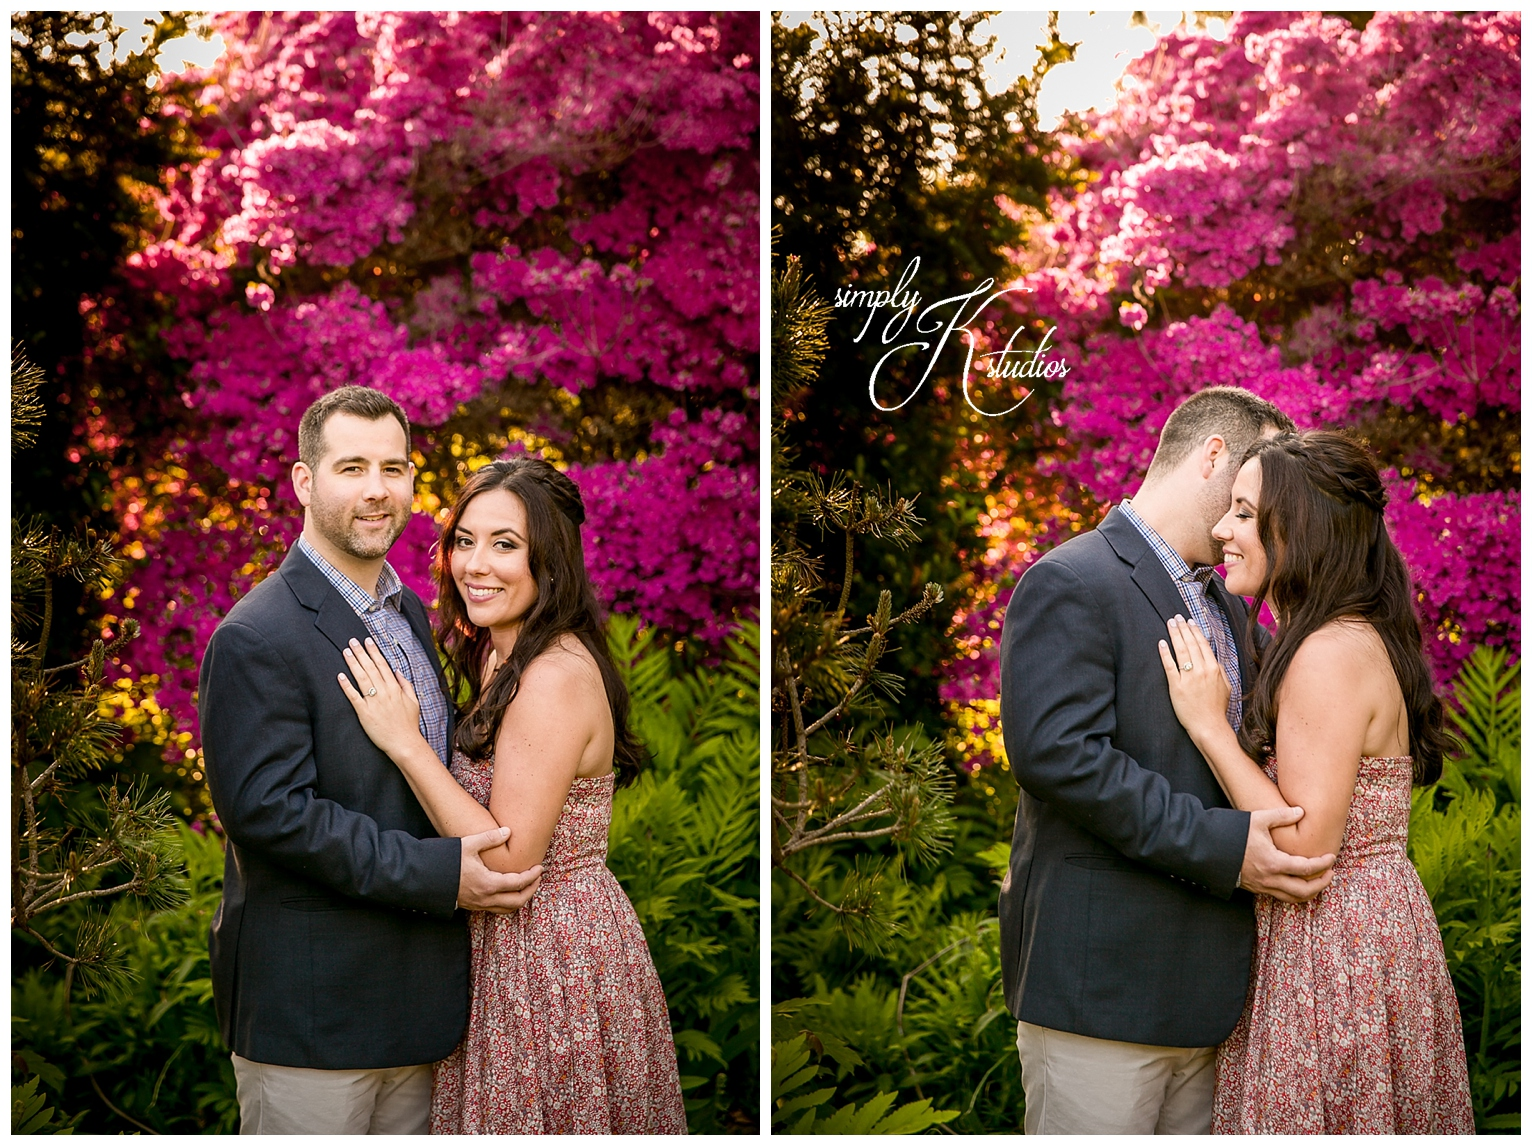 Spring Engagement Sessions in CT.jpg